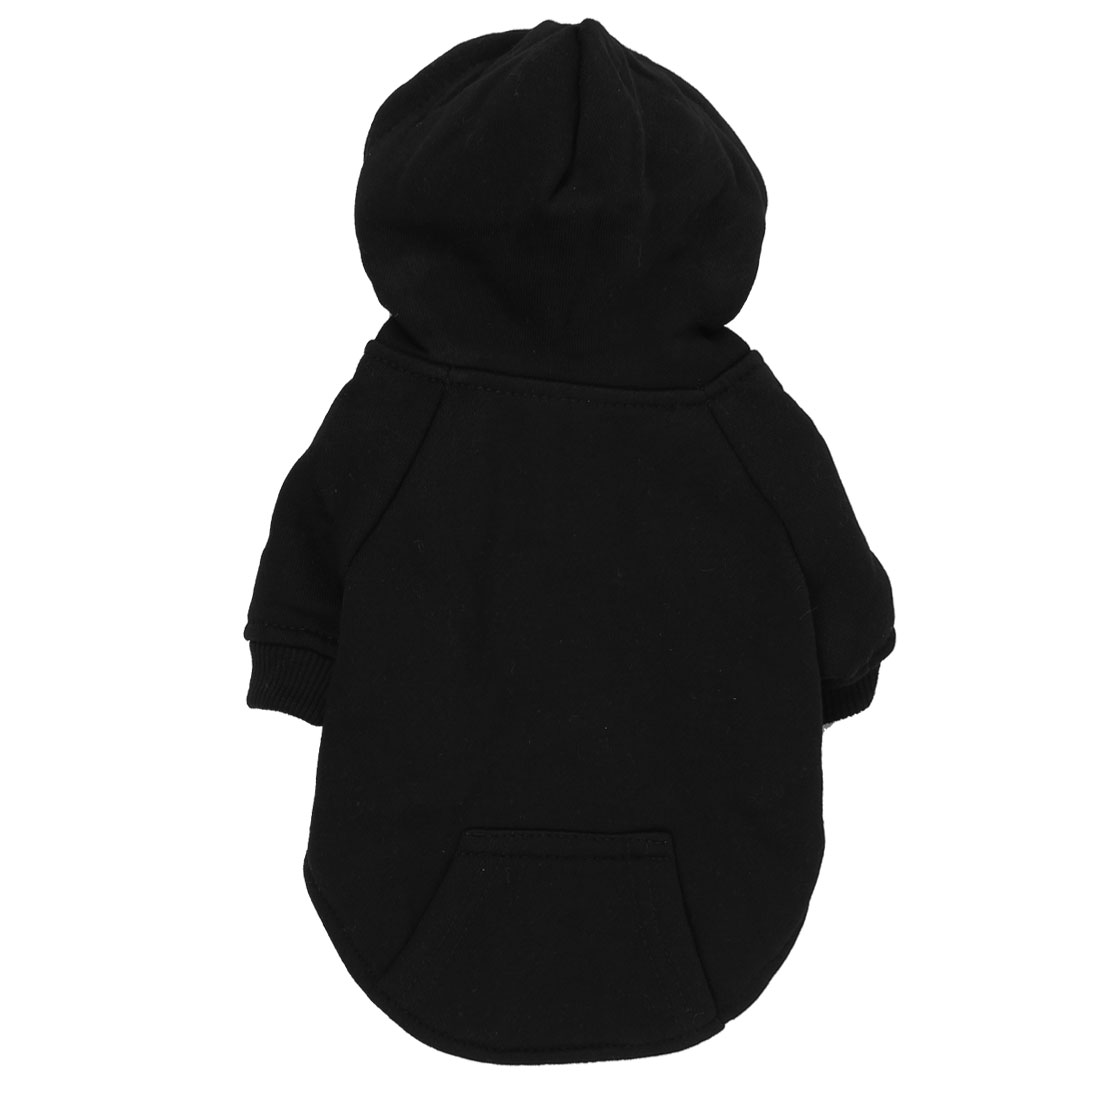 Pet Puppy Warm Hoodie Single Breasted Sleeved Apparel Coat Clothes Black Size M